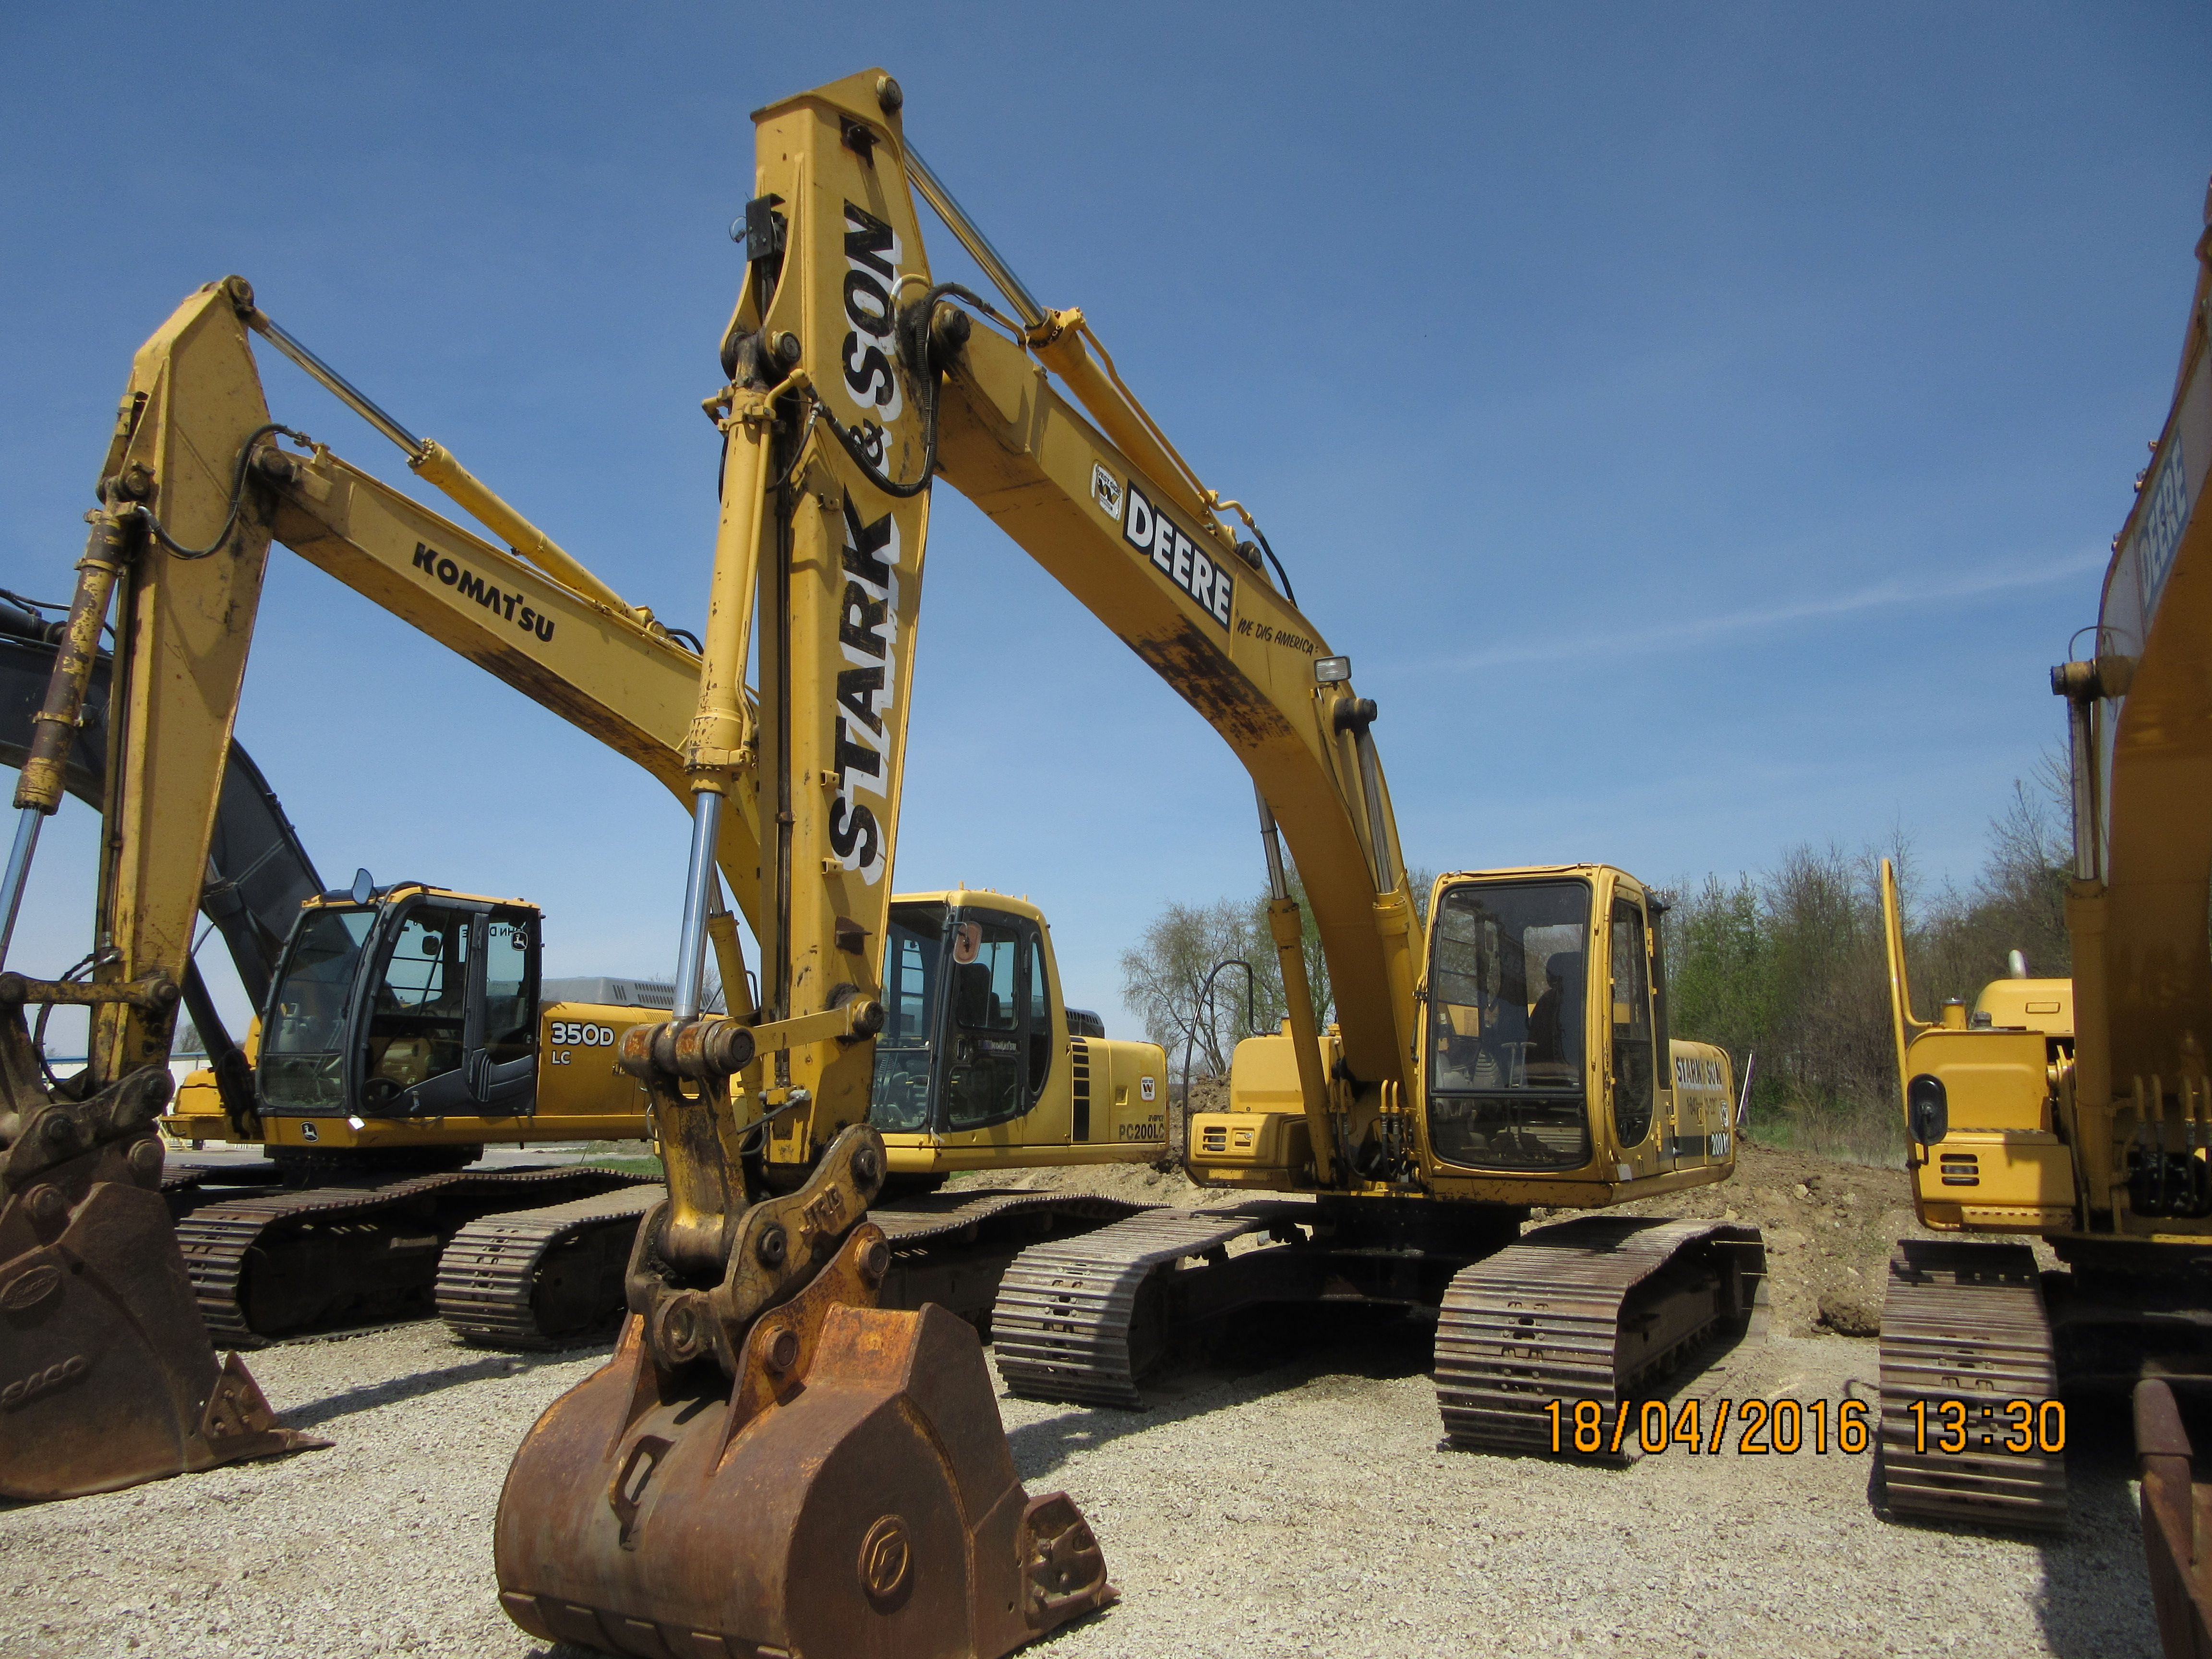 John Deere 200 LC.Replaced the 690E LC hydraulic excavator in 1997